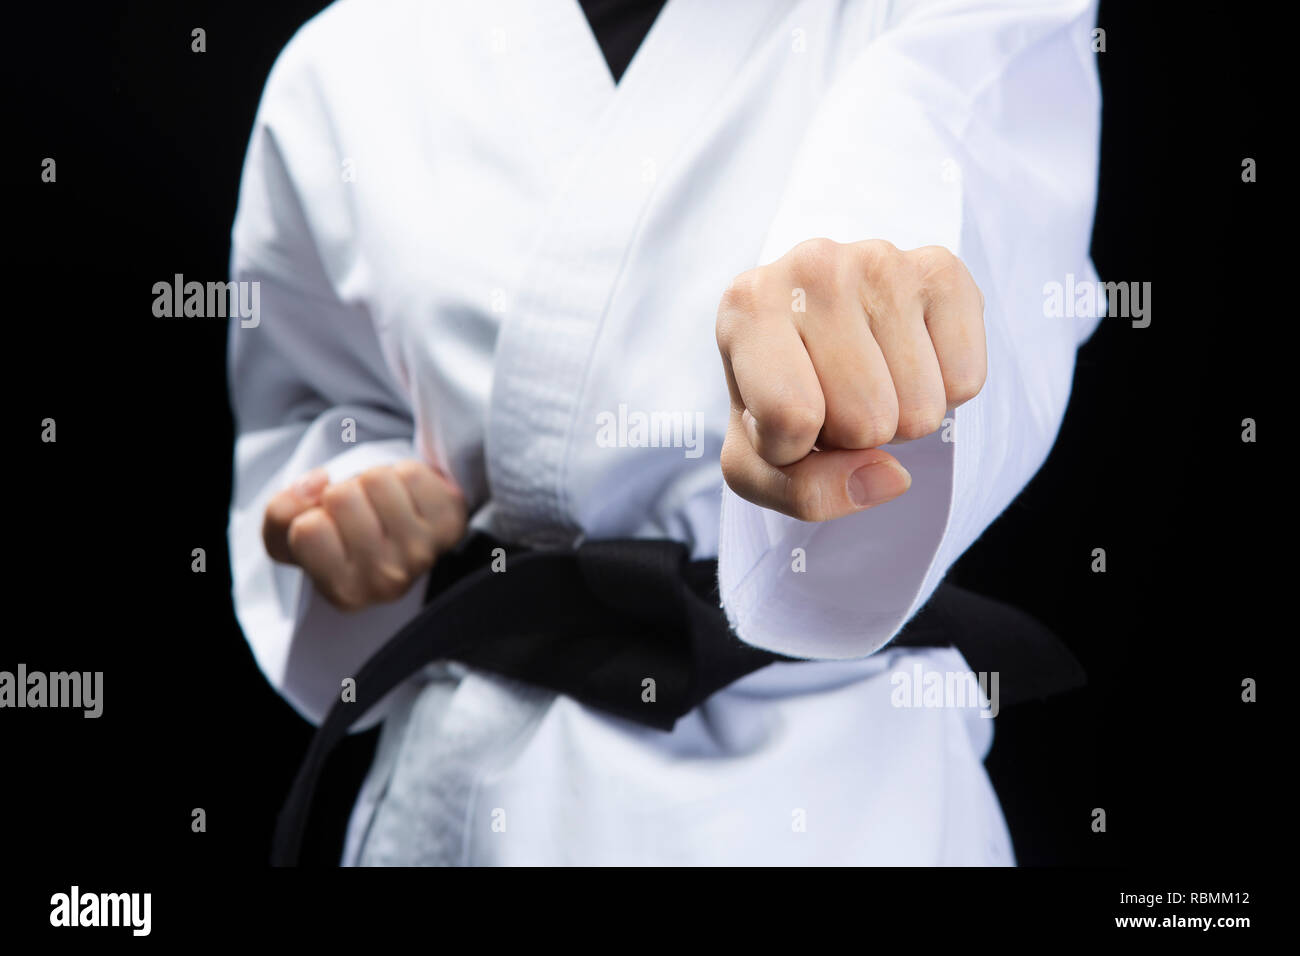 Fist of woman in karate suit on black background - Stock Image